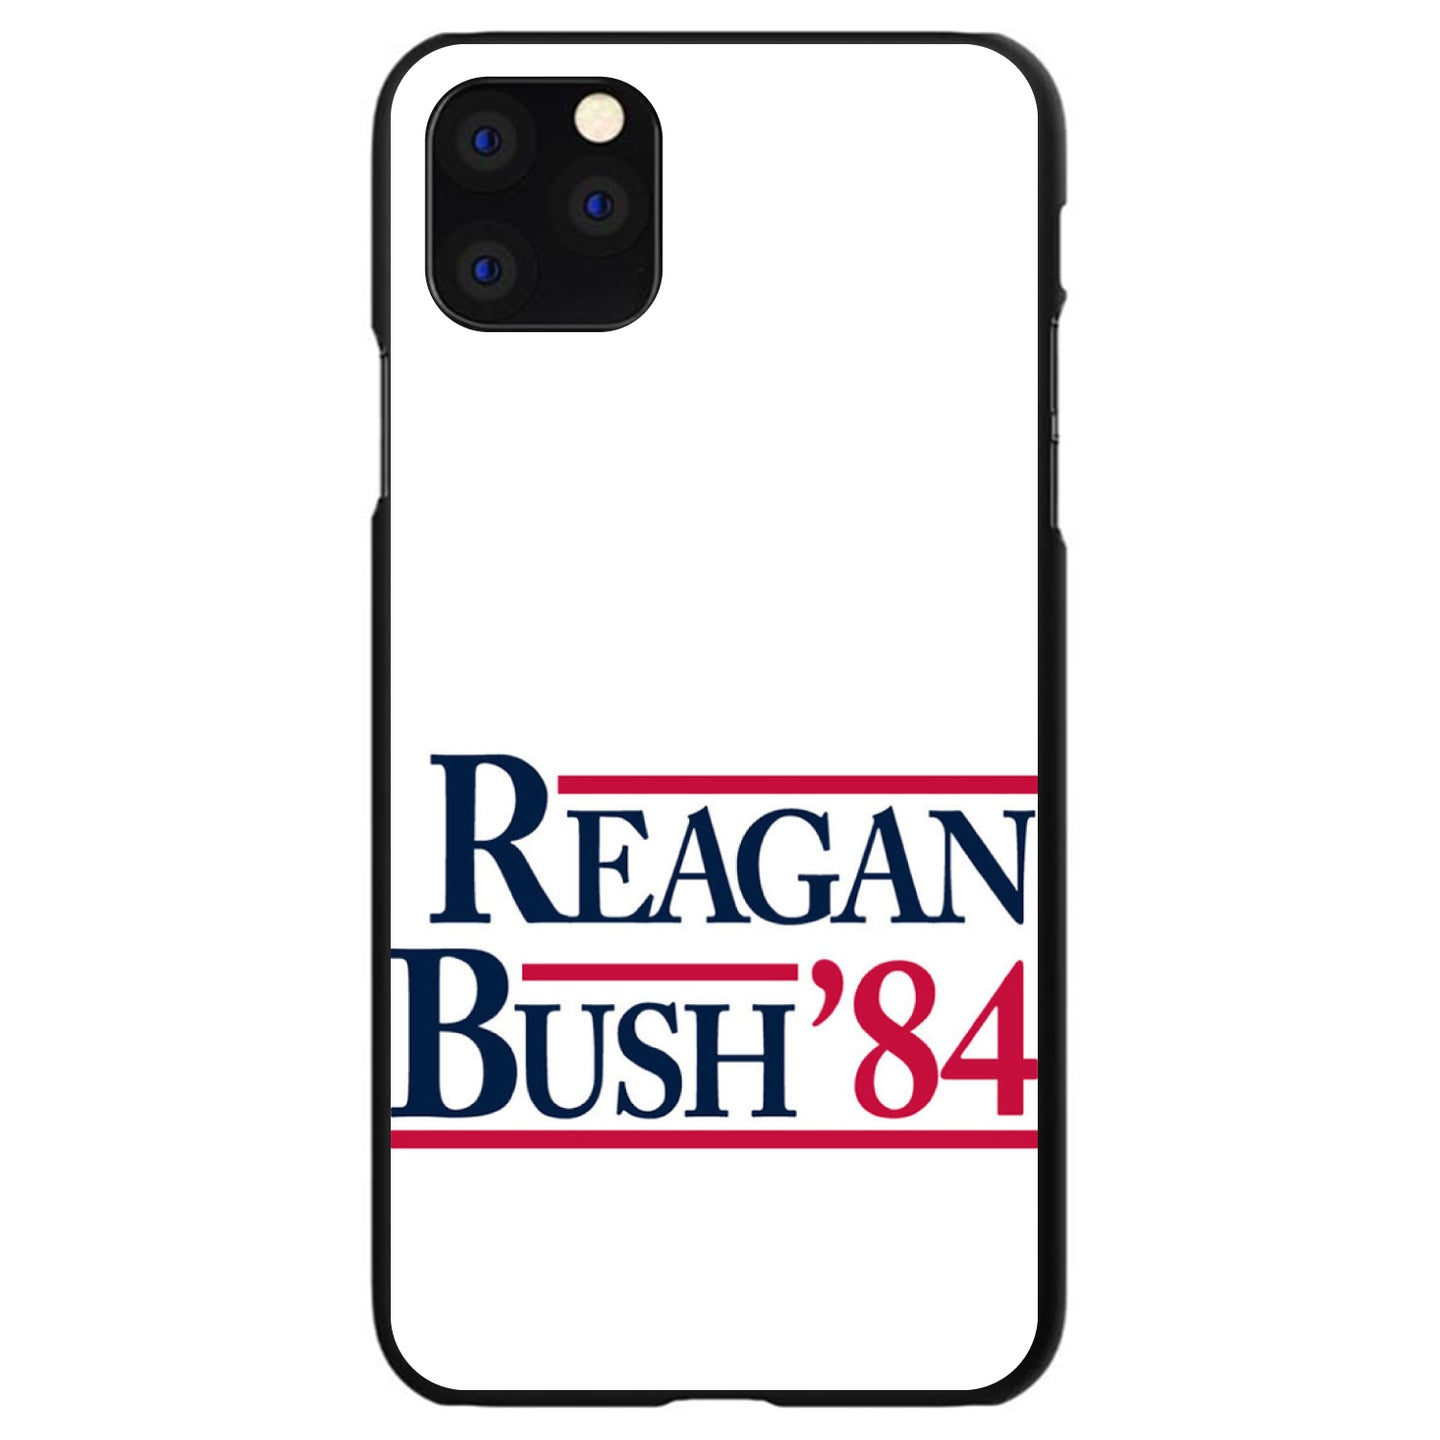 DistinctInk® Hard Plastic Snap-On Case for Apple iPhone - Reagan Bush 1984